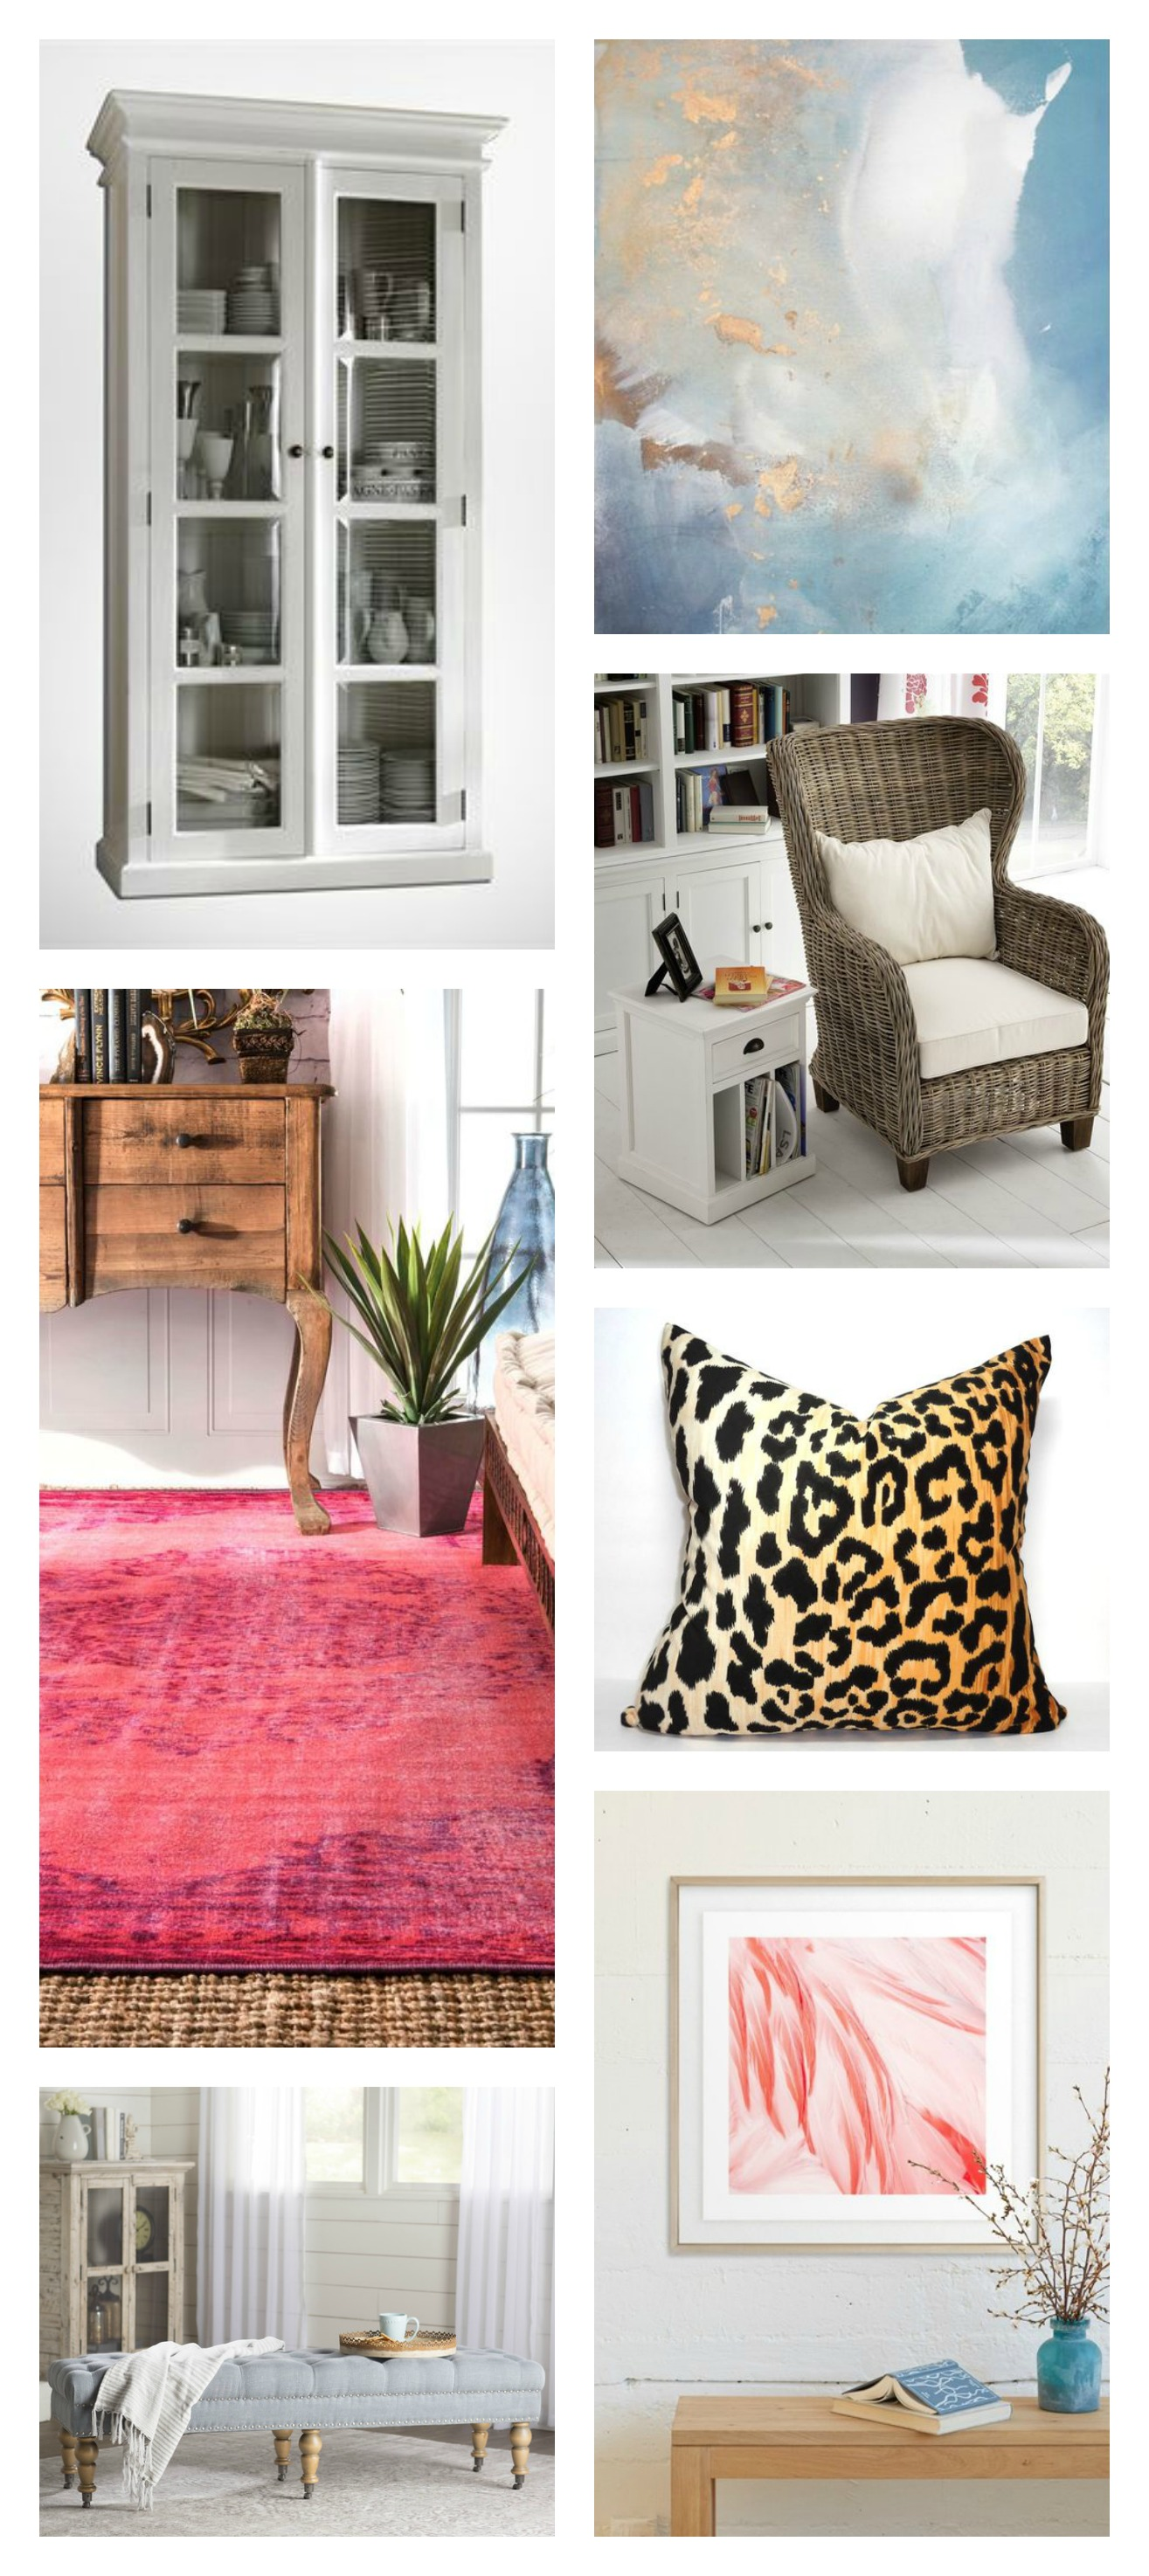 Color Lovers Decorating Event - Living Room Decor Choices and Idea Board